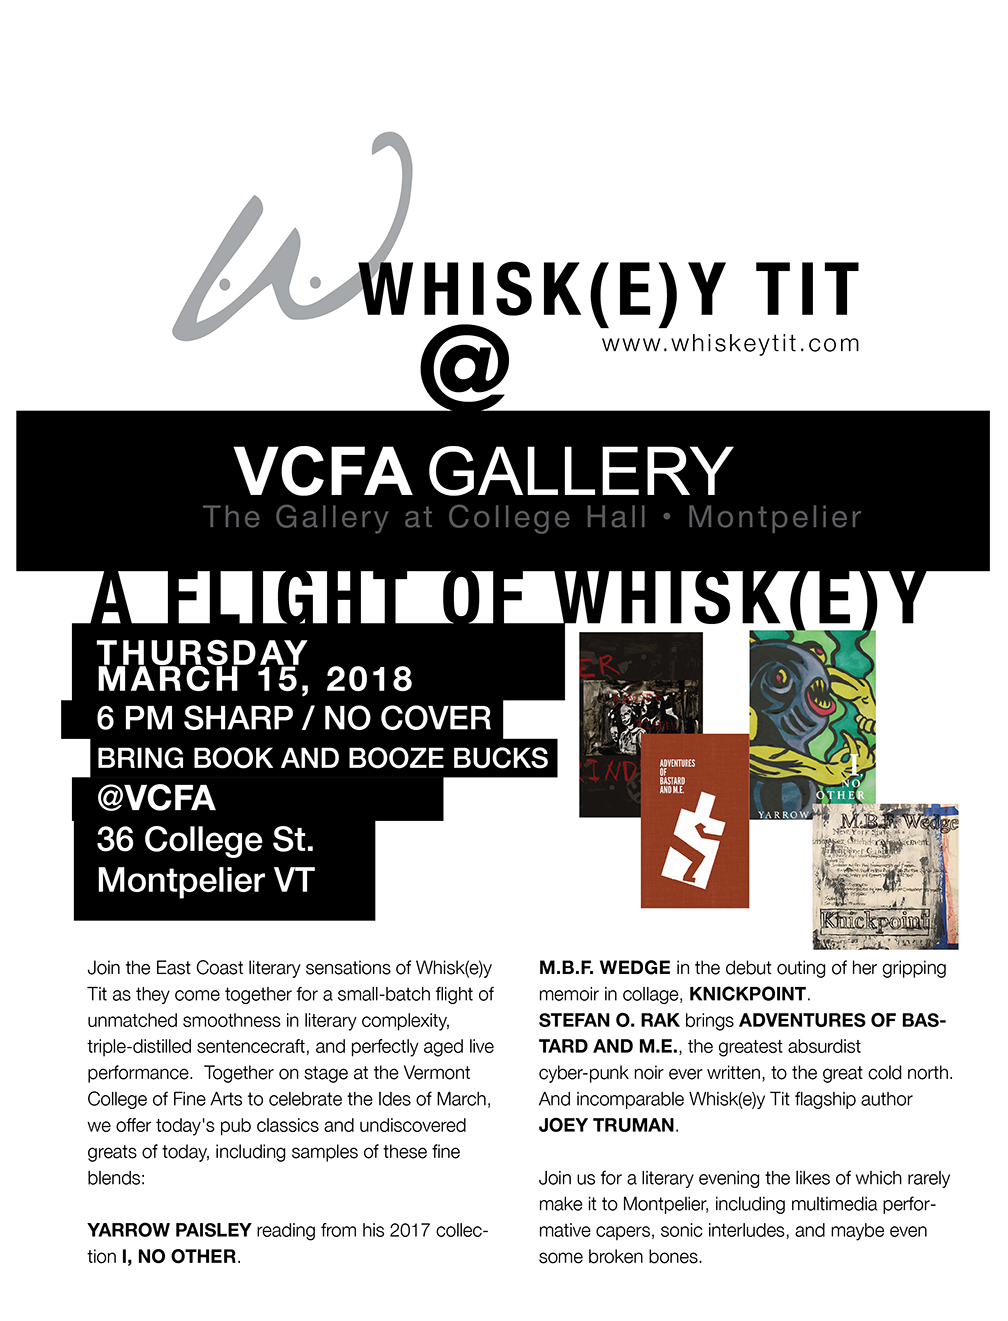 Whiskey Tit @ VCFA Gallery